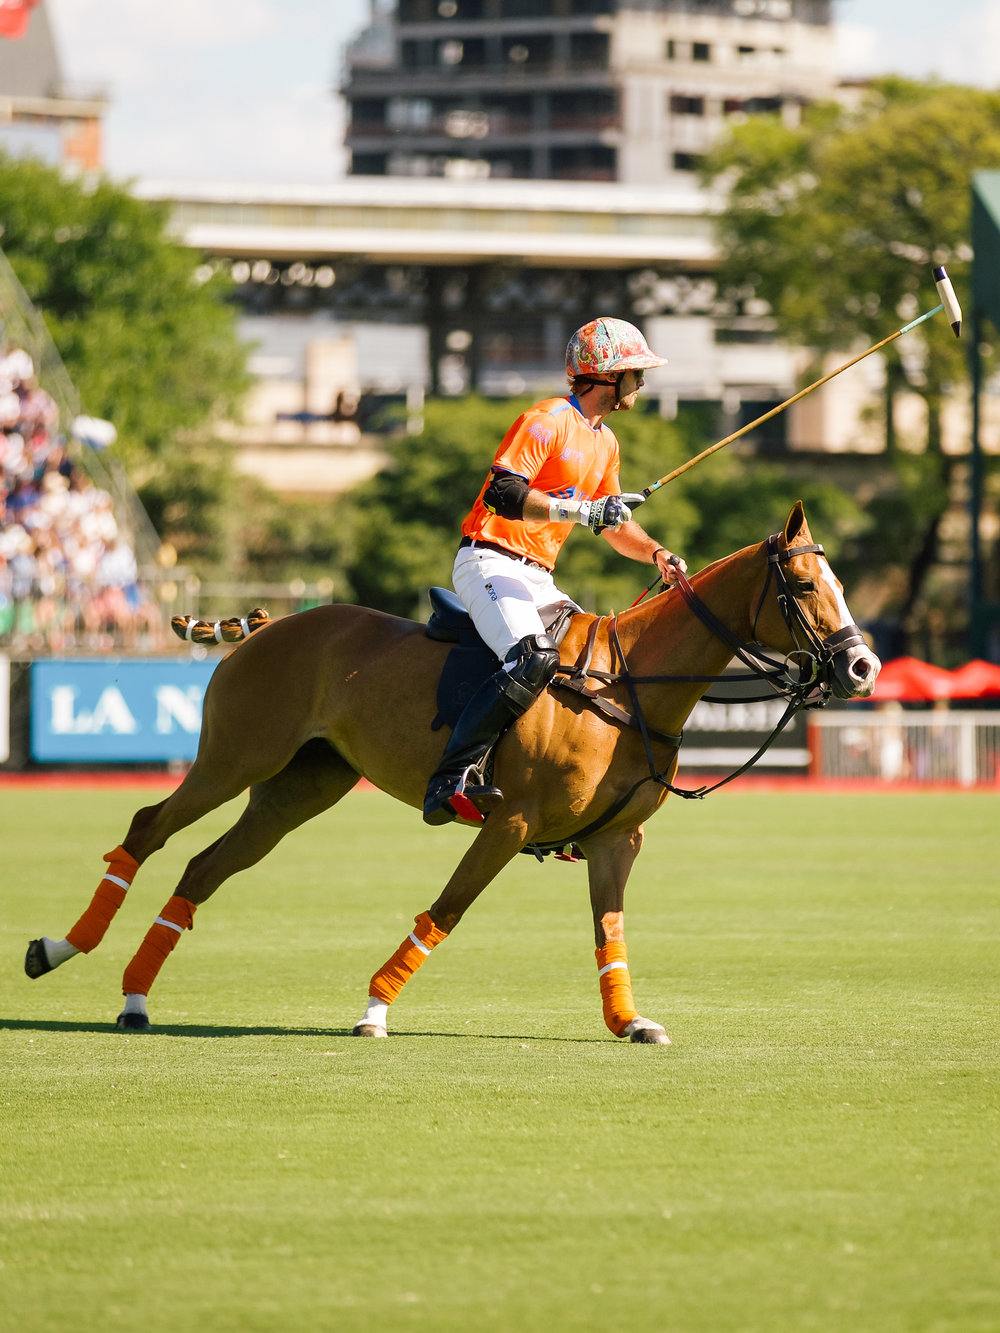 LCB STYLE ARGENTINE OPEN POLO PALERMO12.jpg